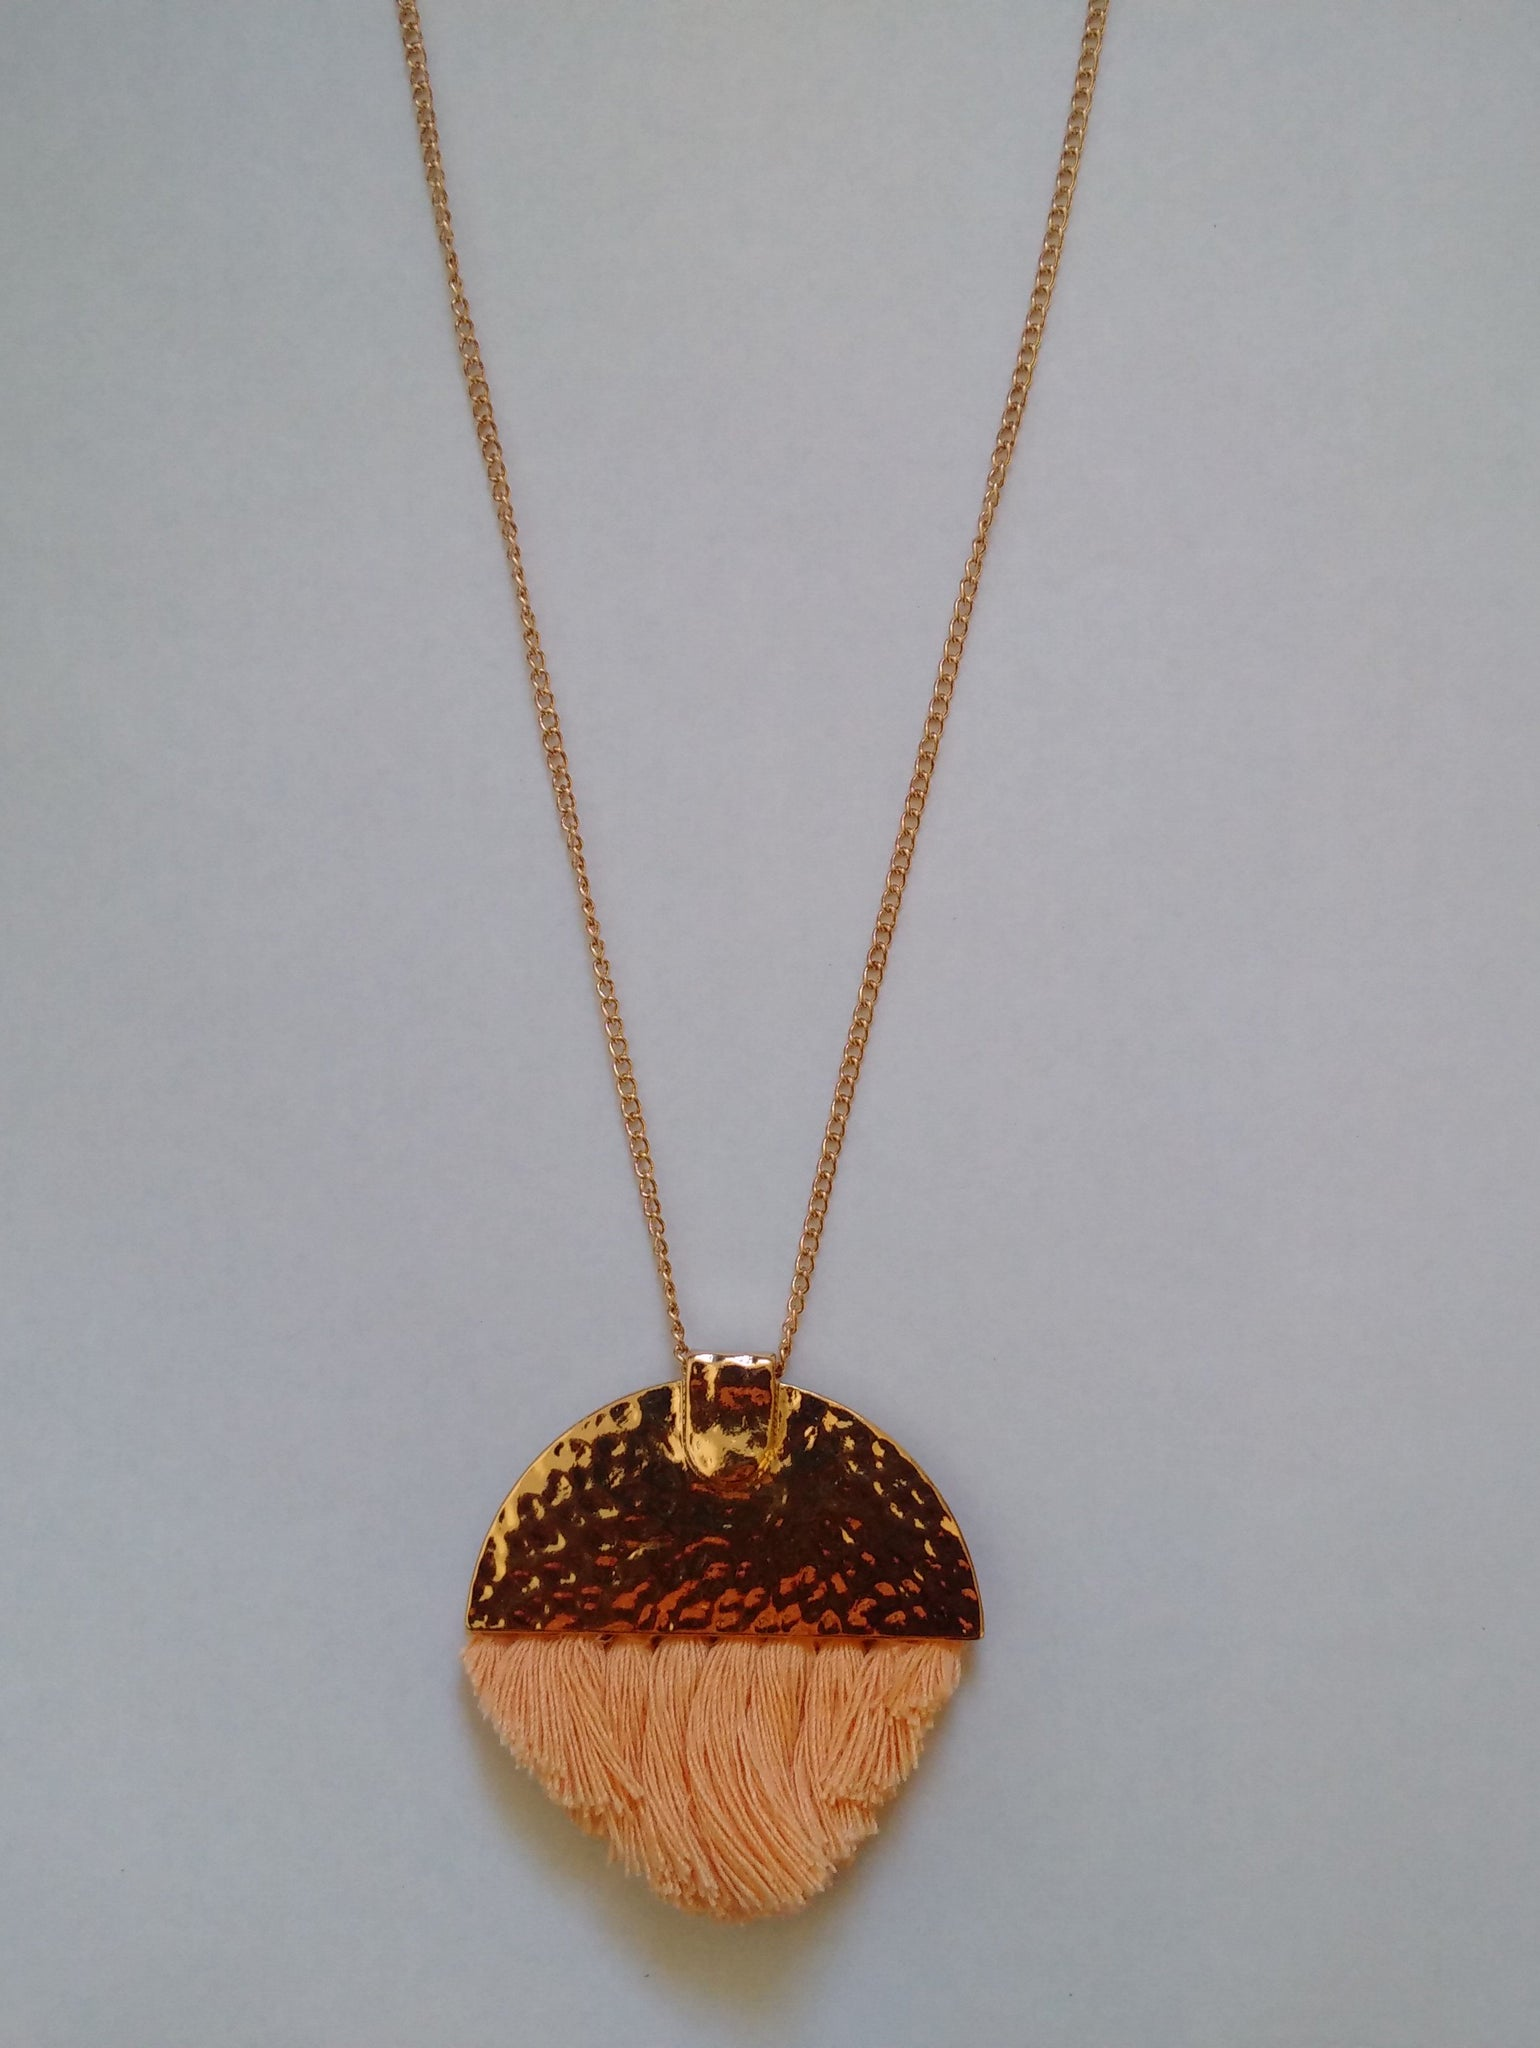 Half Moon Tassel Necklace - Stockpoint Apparel Outlet